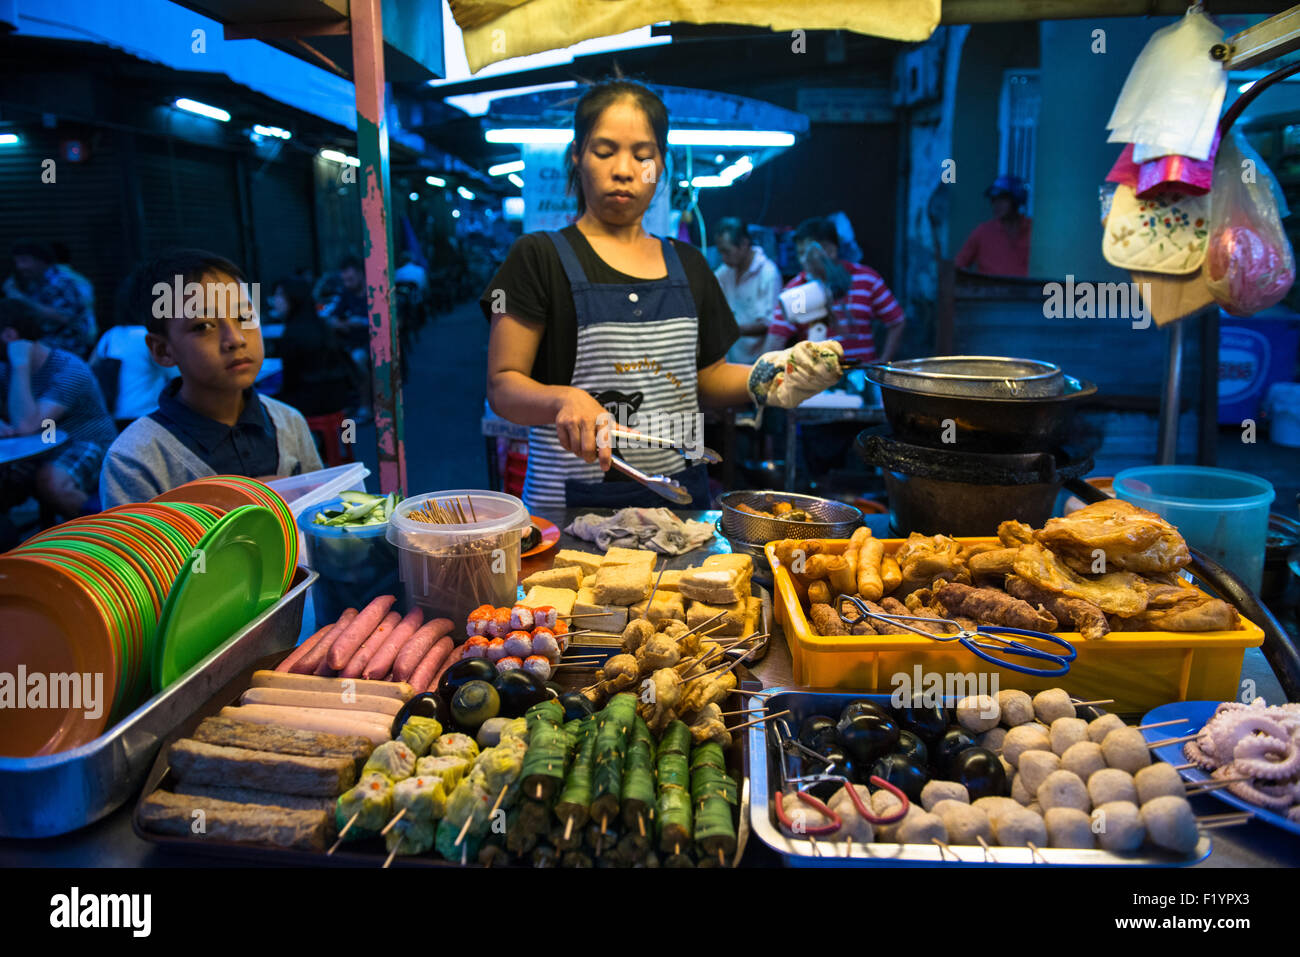 Street food stalls at the vibrant night market in Georgetown, Penang. - Stock Image